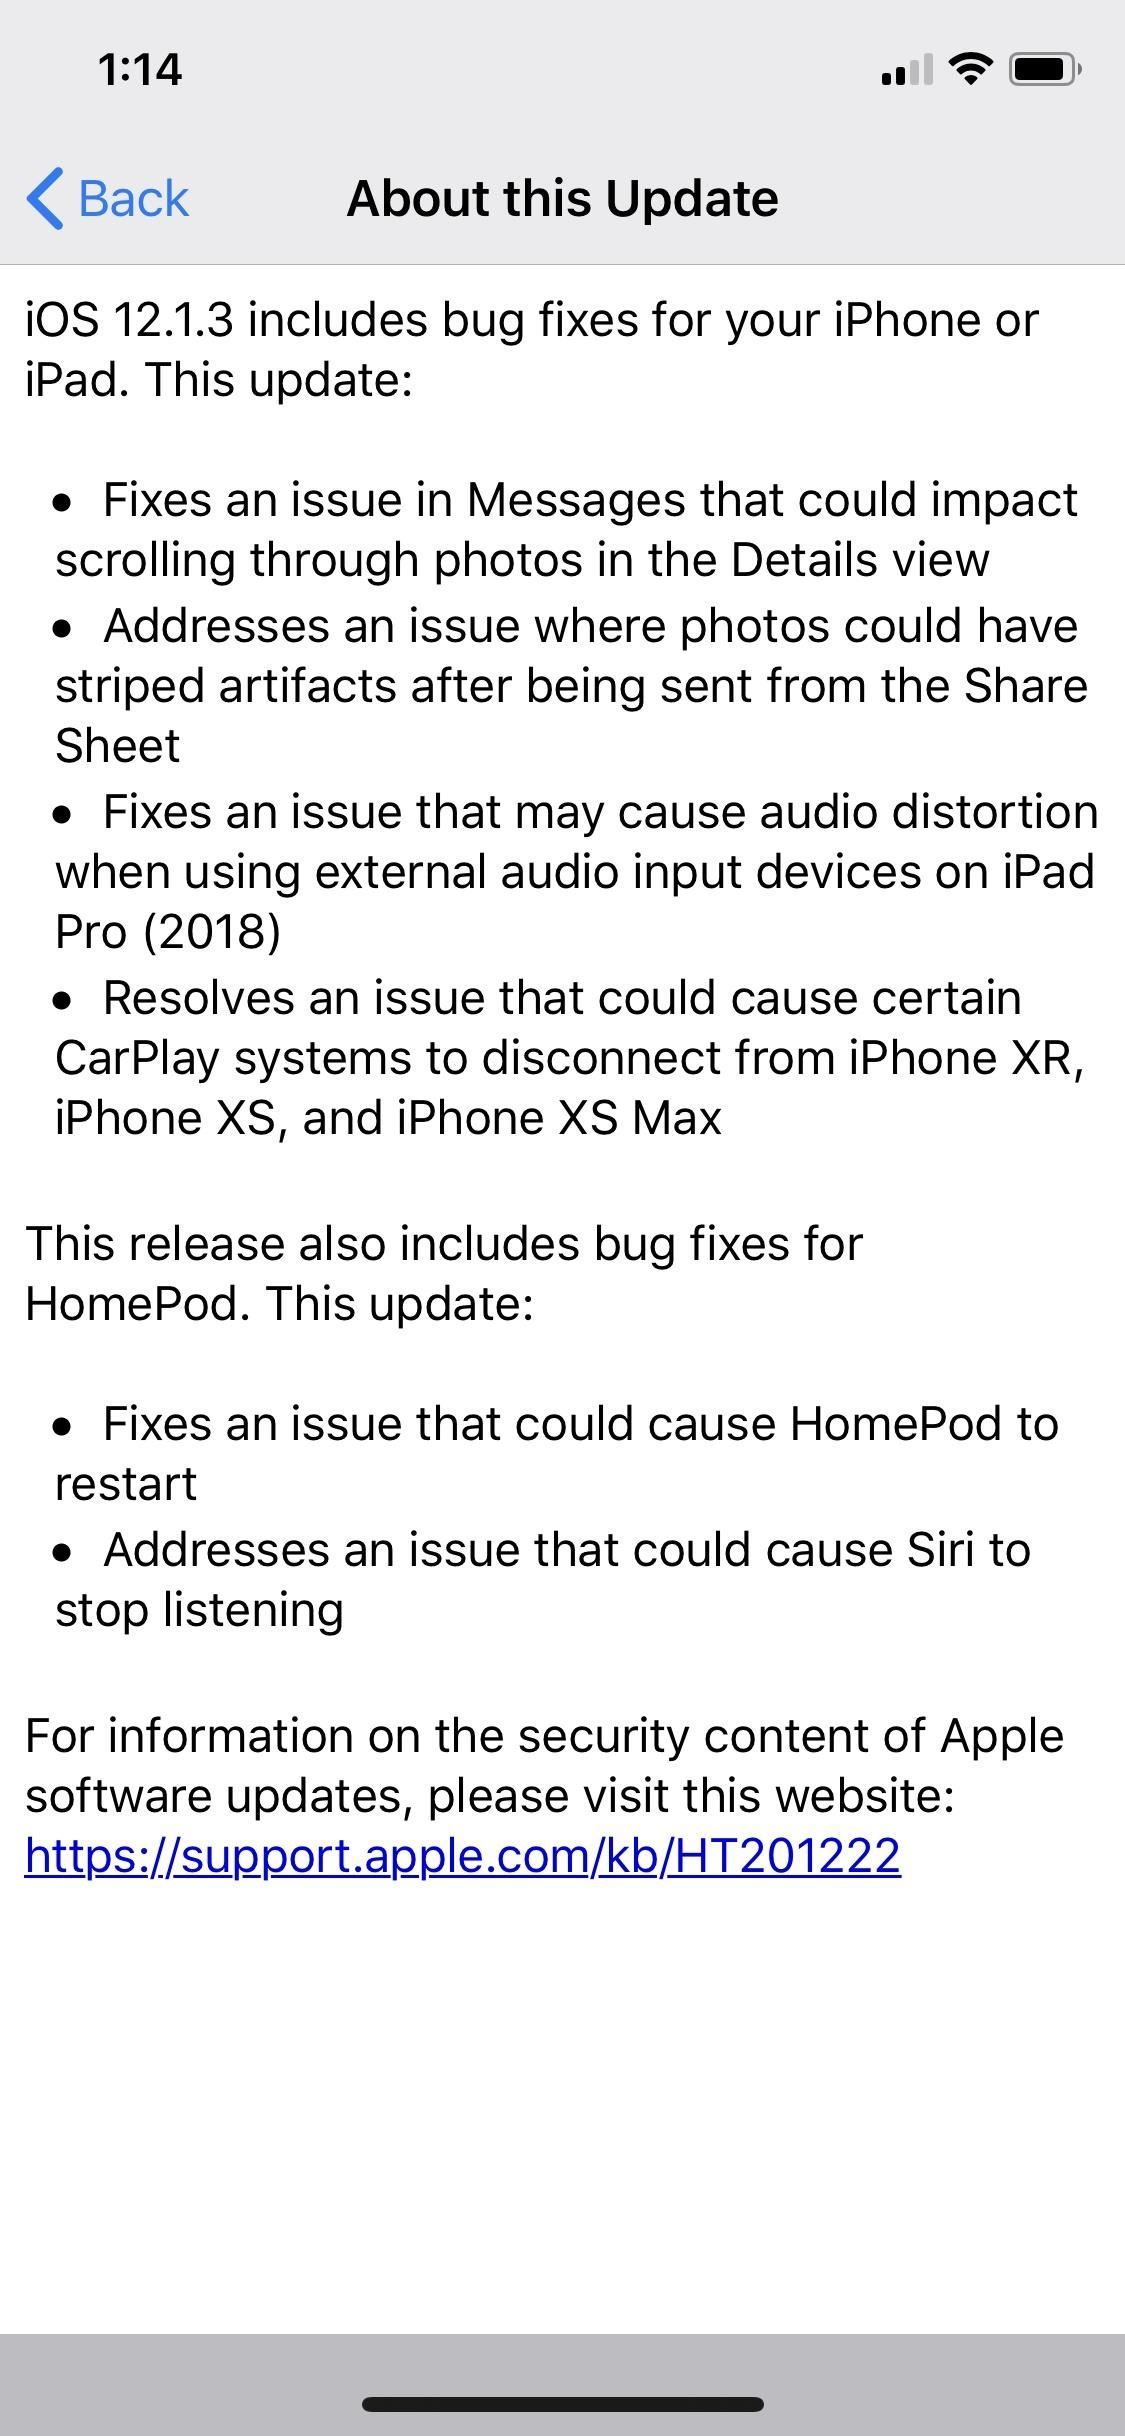 Apple Just Released iOS 12.1.3 for iPhones, Fixes Messages Bug, CarPlay Connectivity & More